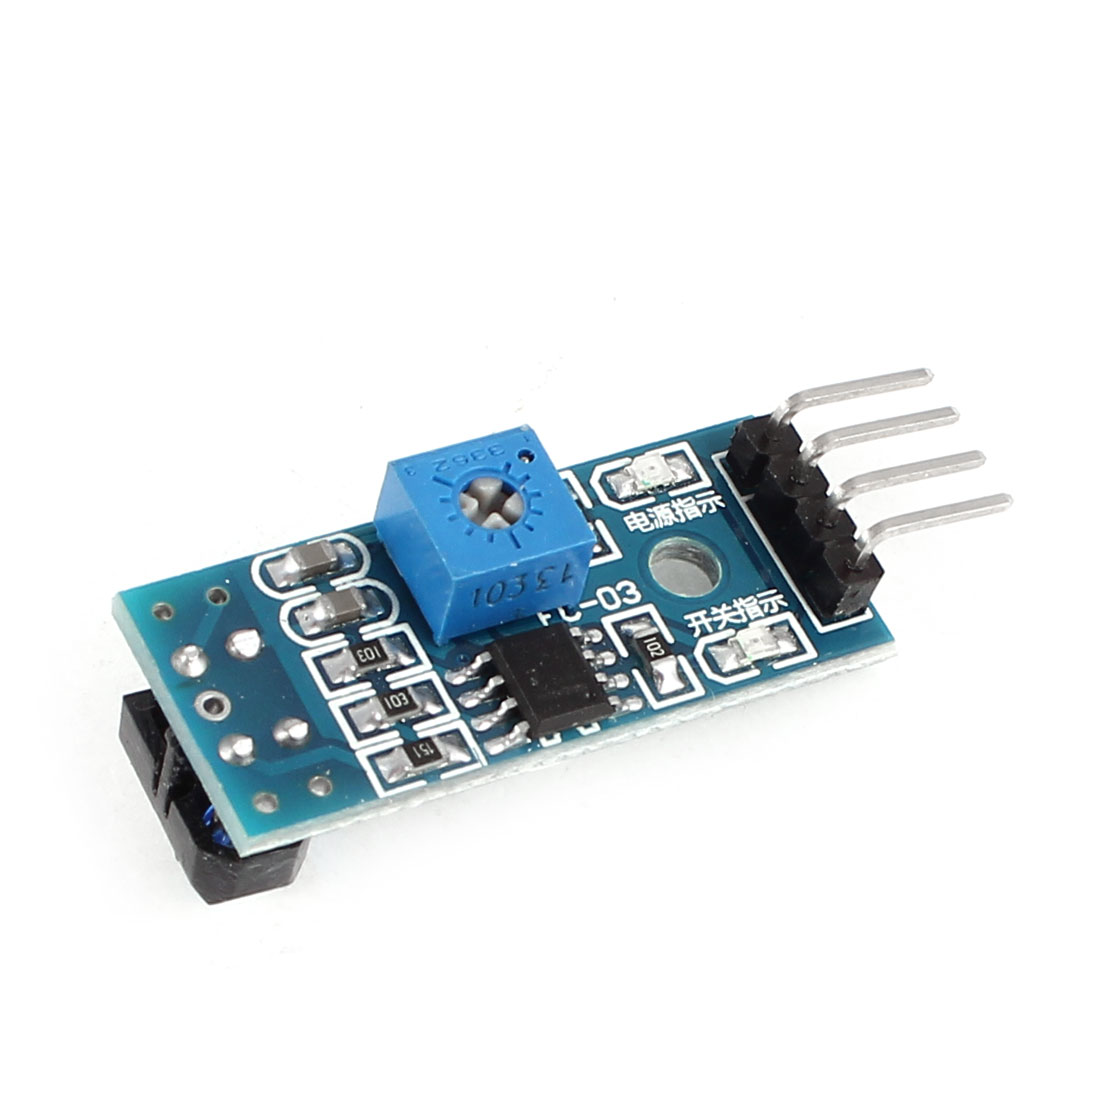 LM393 Chipset Infrared Line Tracking Sensor TCRT5000 Obstacle Avoidance Module